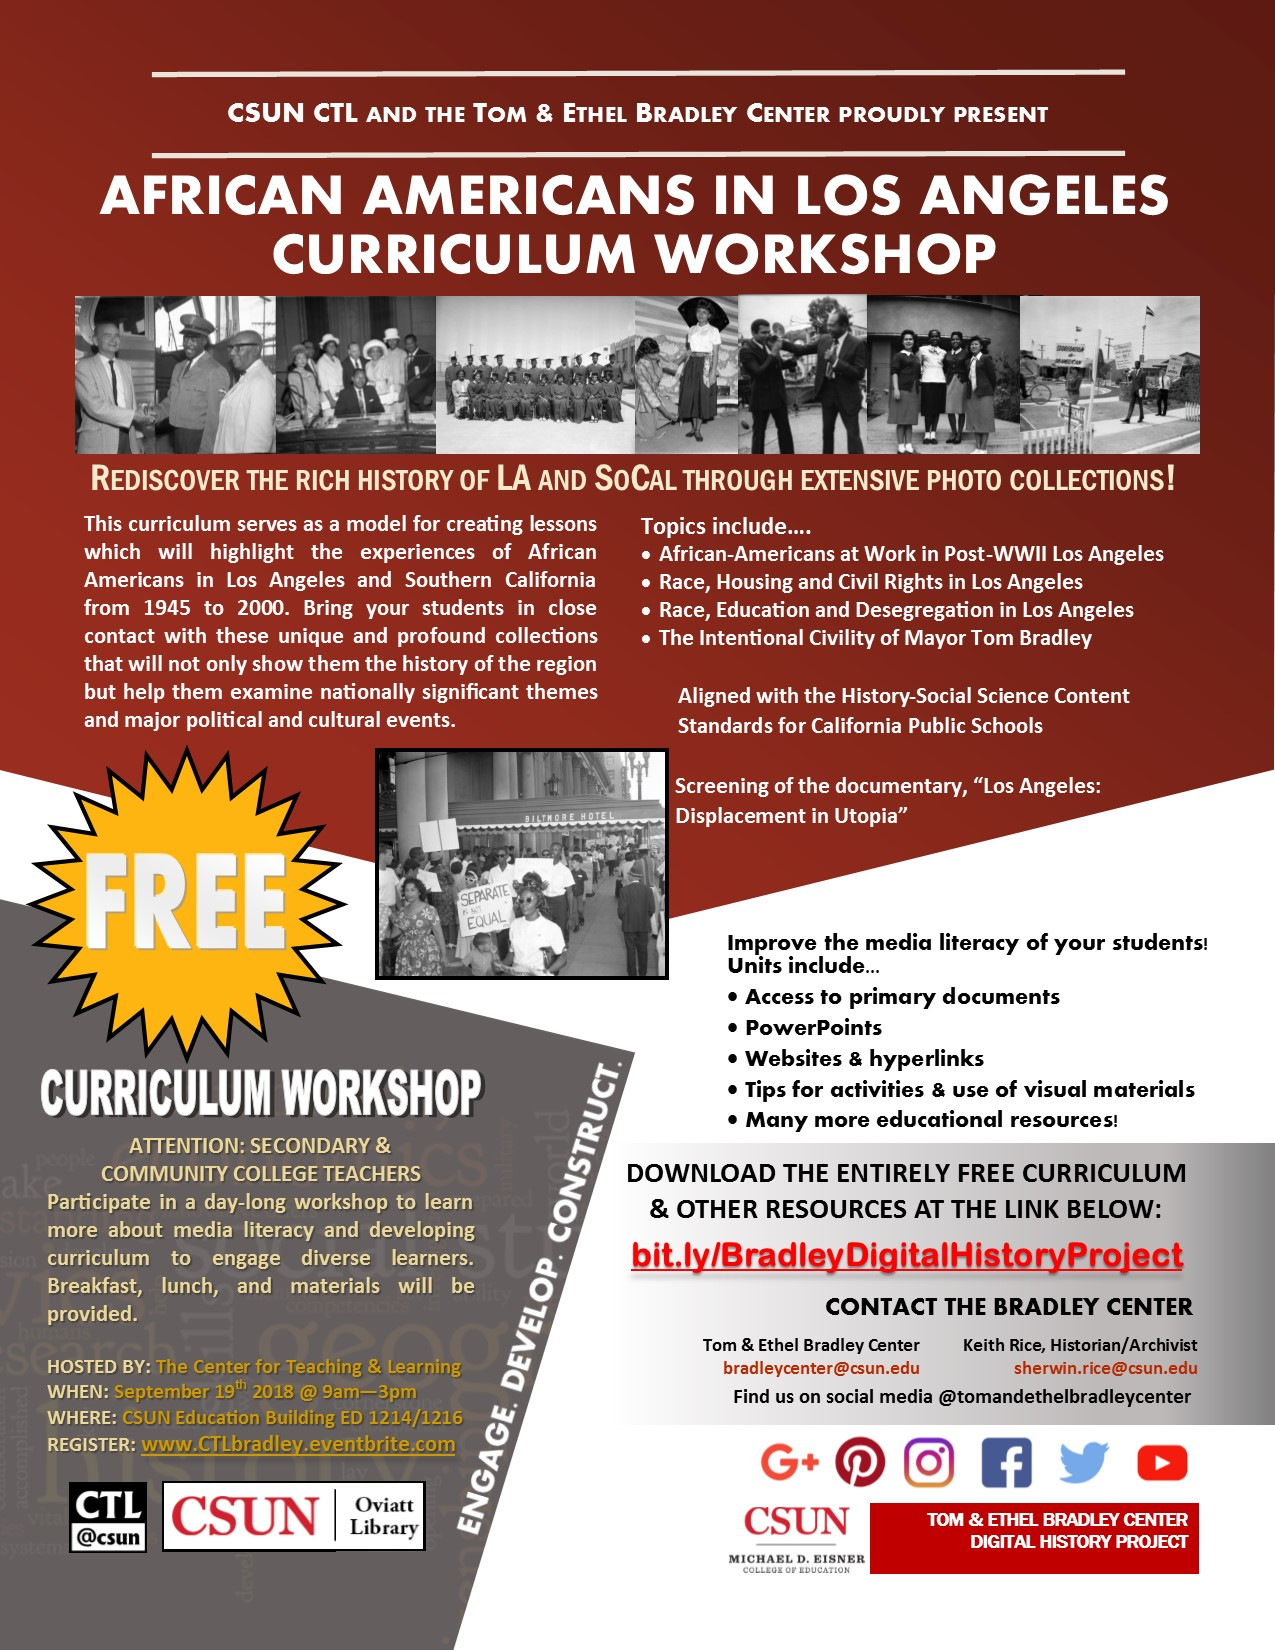 Curriculum Workshop: African Americans in LA. Hosted by the Center for Teaching and Learning. September 19, 2018 from 9am-3pm. Free. CSUN Education Building ED1214/1216